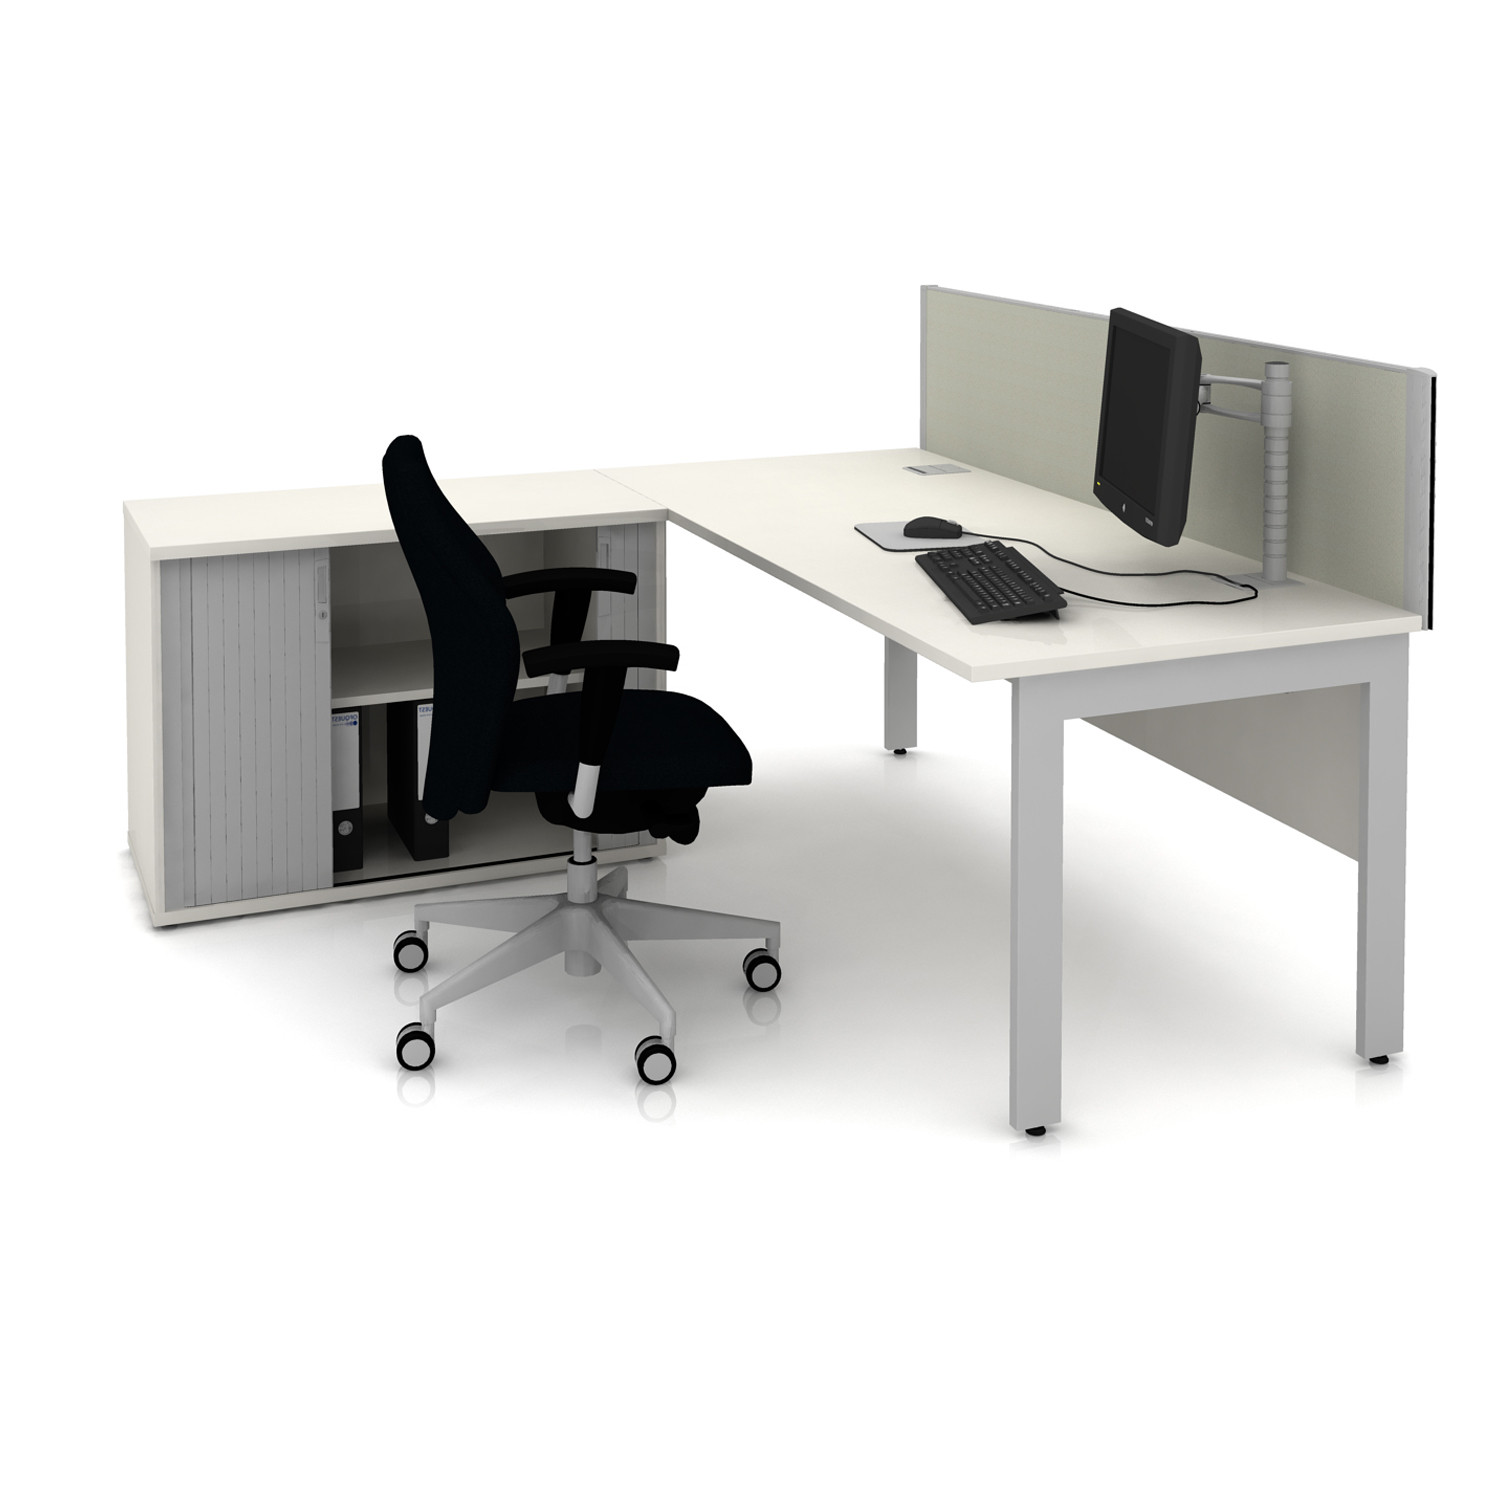 Qore Office Desk and Storage